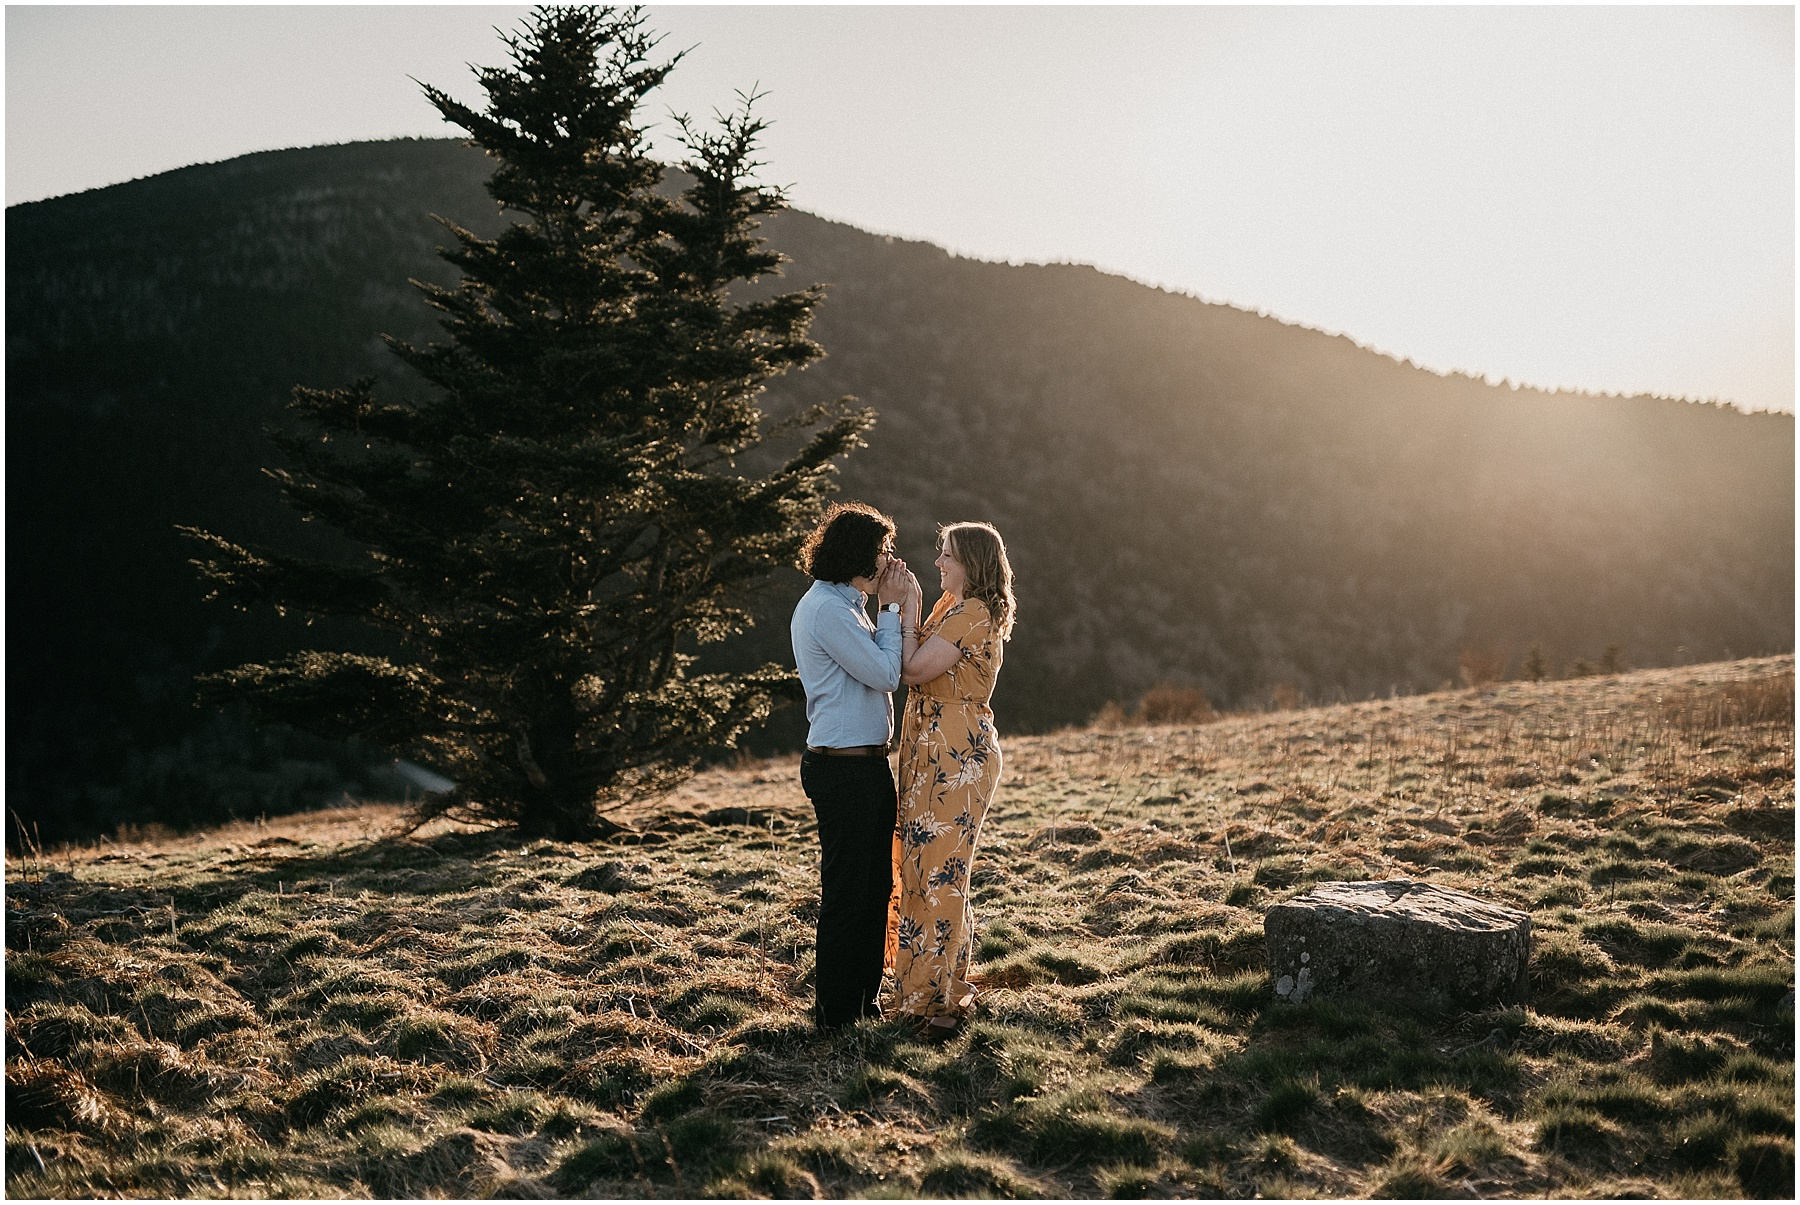 Boone_Engagement_Photographer_11.jpg